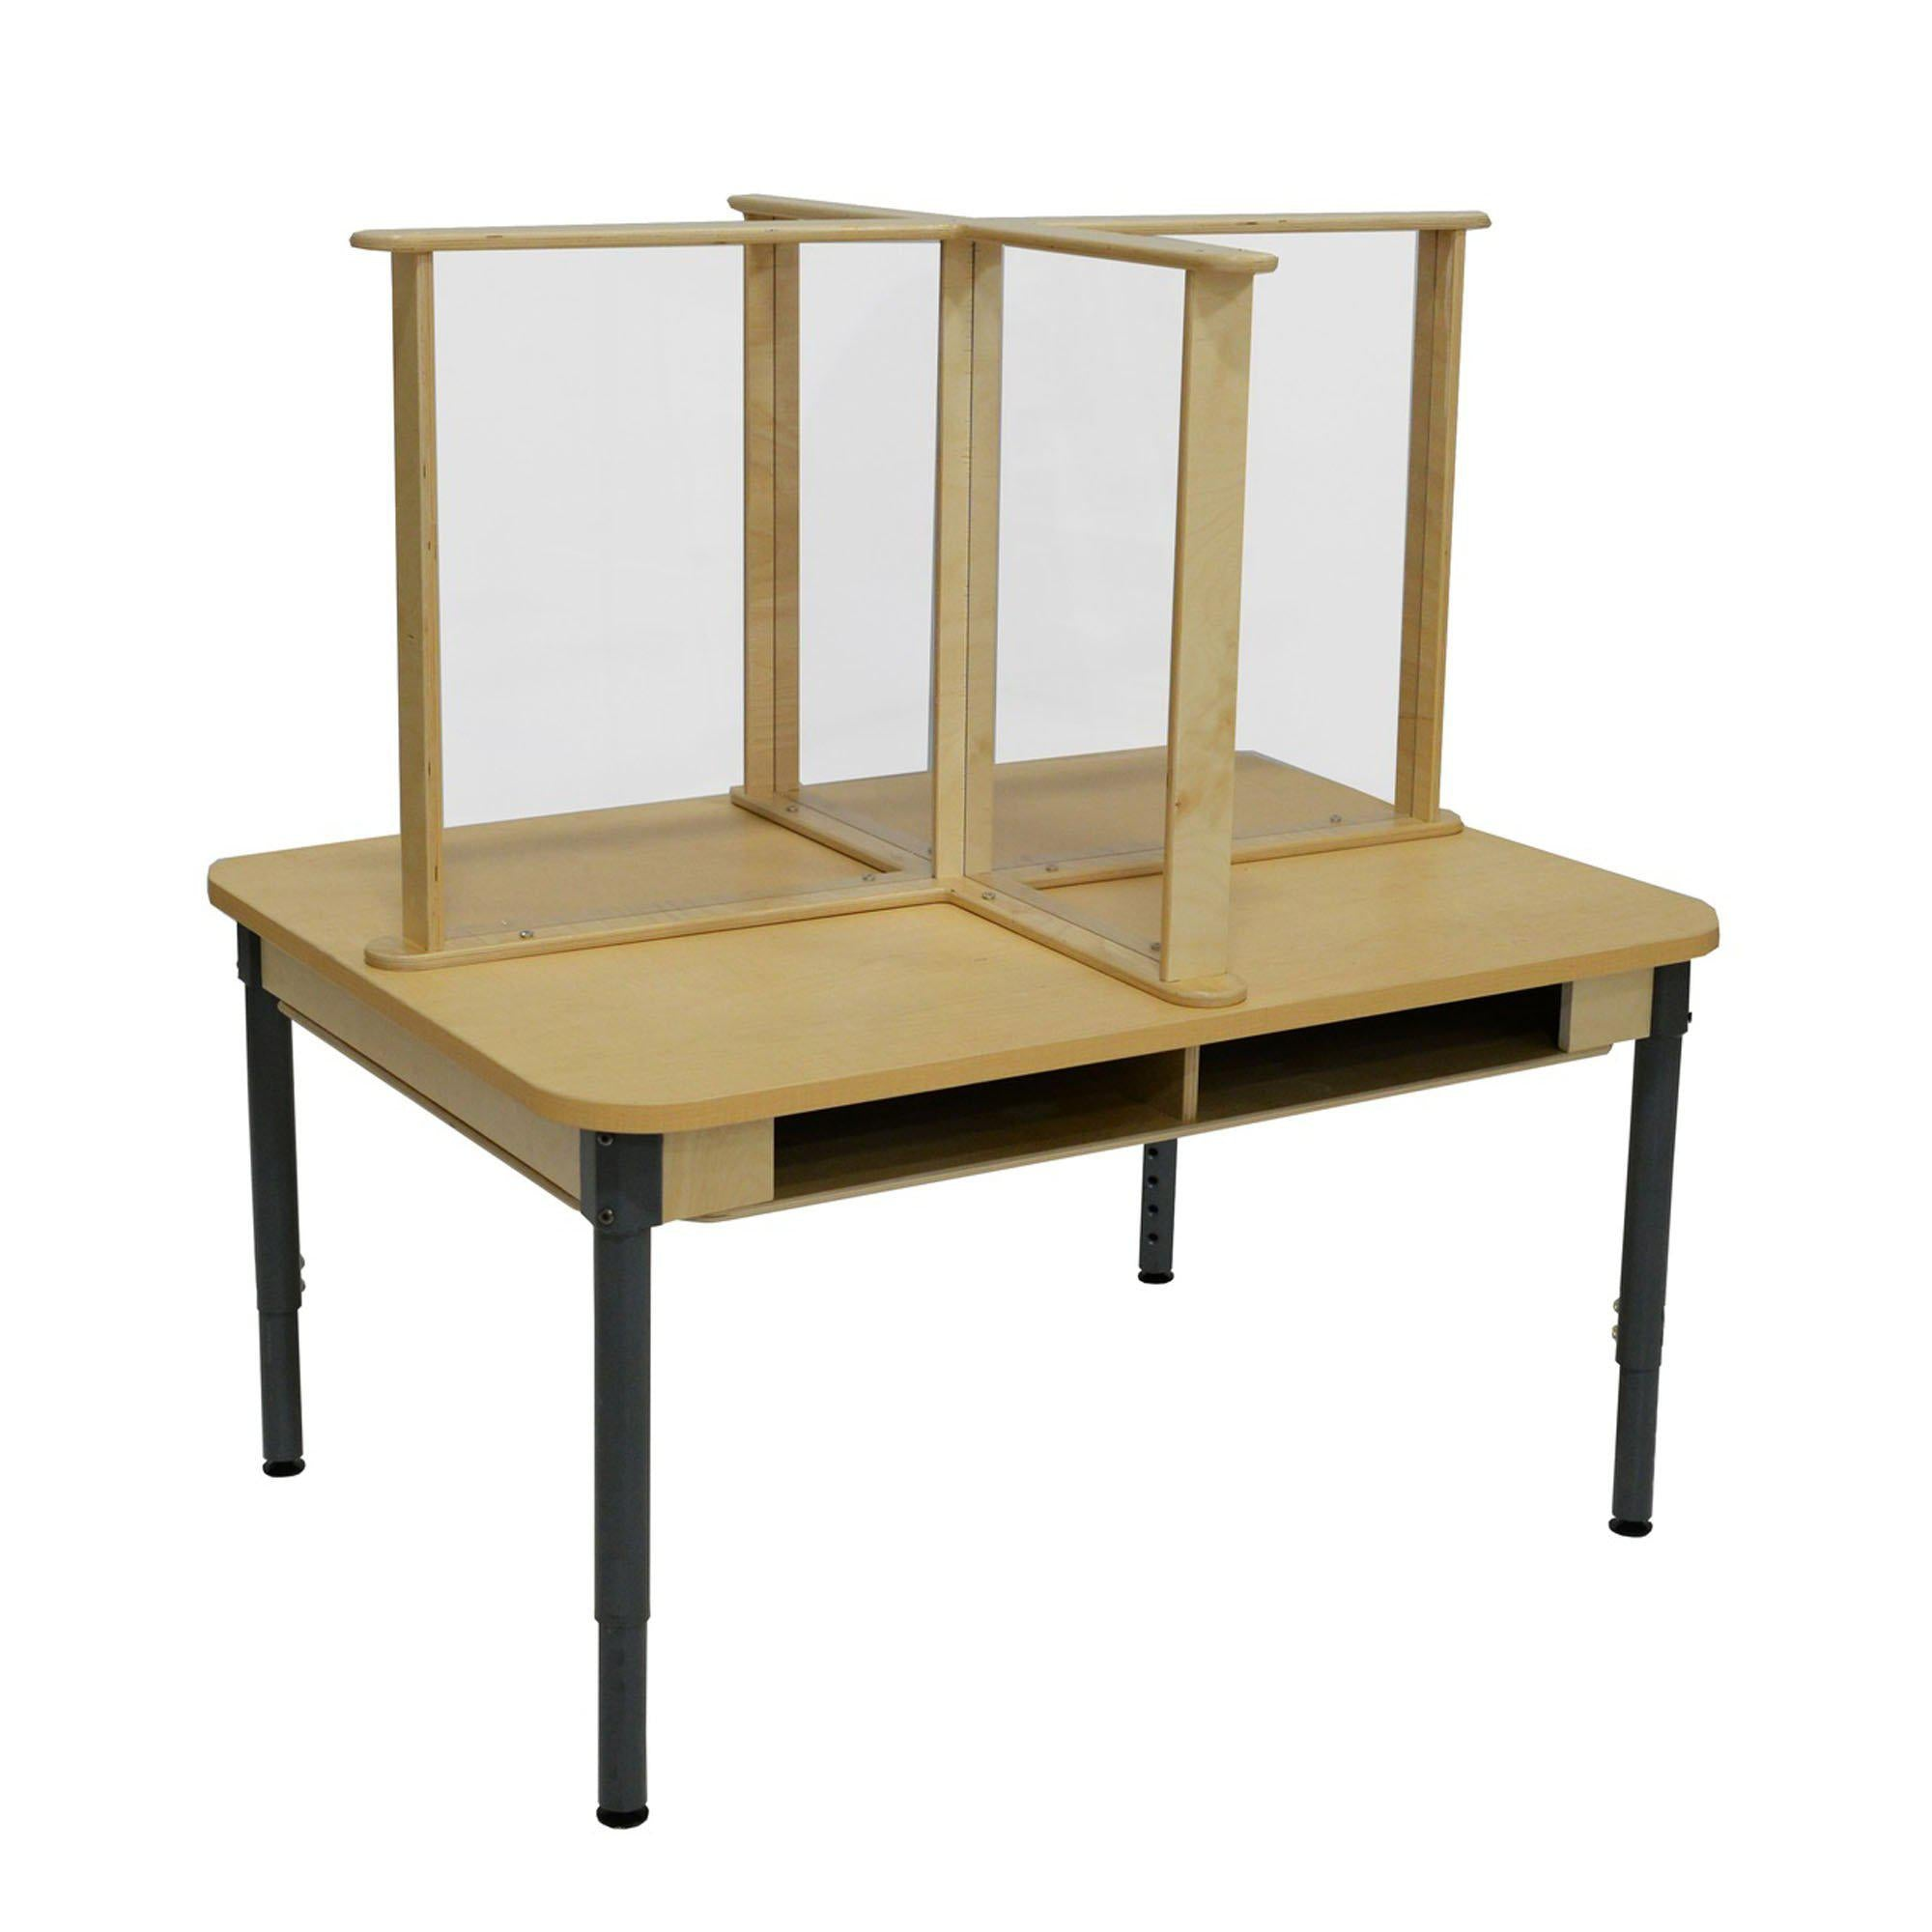 "Four-Person Desk with Sneeze Guard, 36"" x 48"""